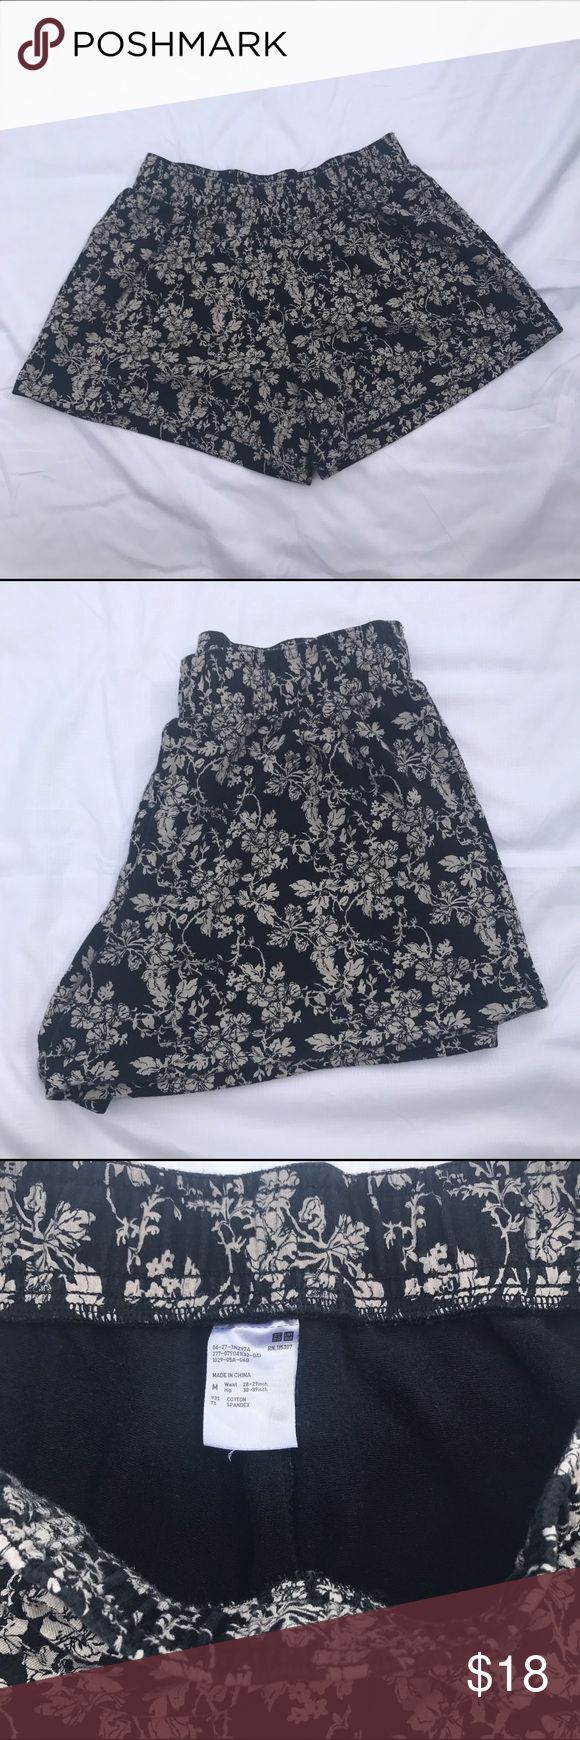 """UNIQLO Cotton Stretchy Leafy Shorts Size Medium UNIQLO Cotton Shorts with Leaf Pattern Design. Like New! No Flaws. Women's Size Medium but super Stretchy and very comfortable! Only worn once! Waist-28-29"""". Very Cute for Summer! Uniqlo Shorts"""